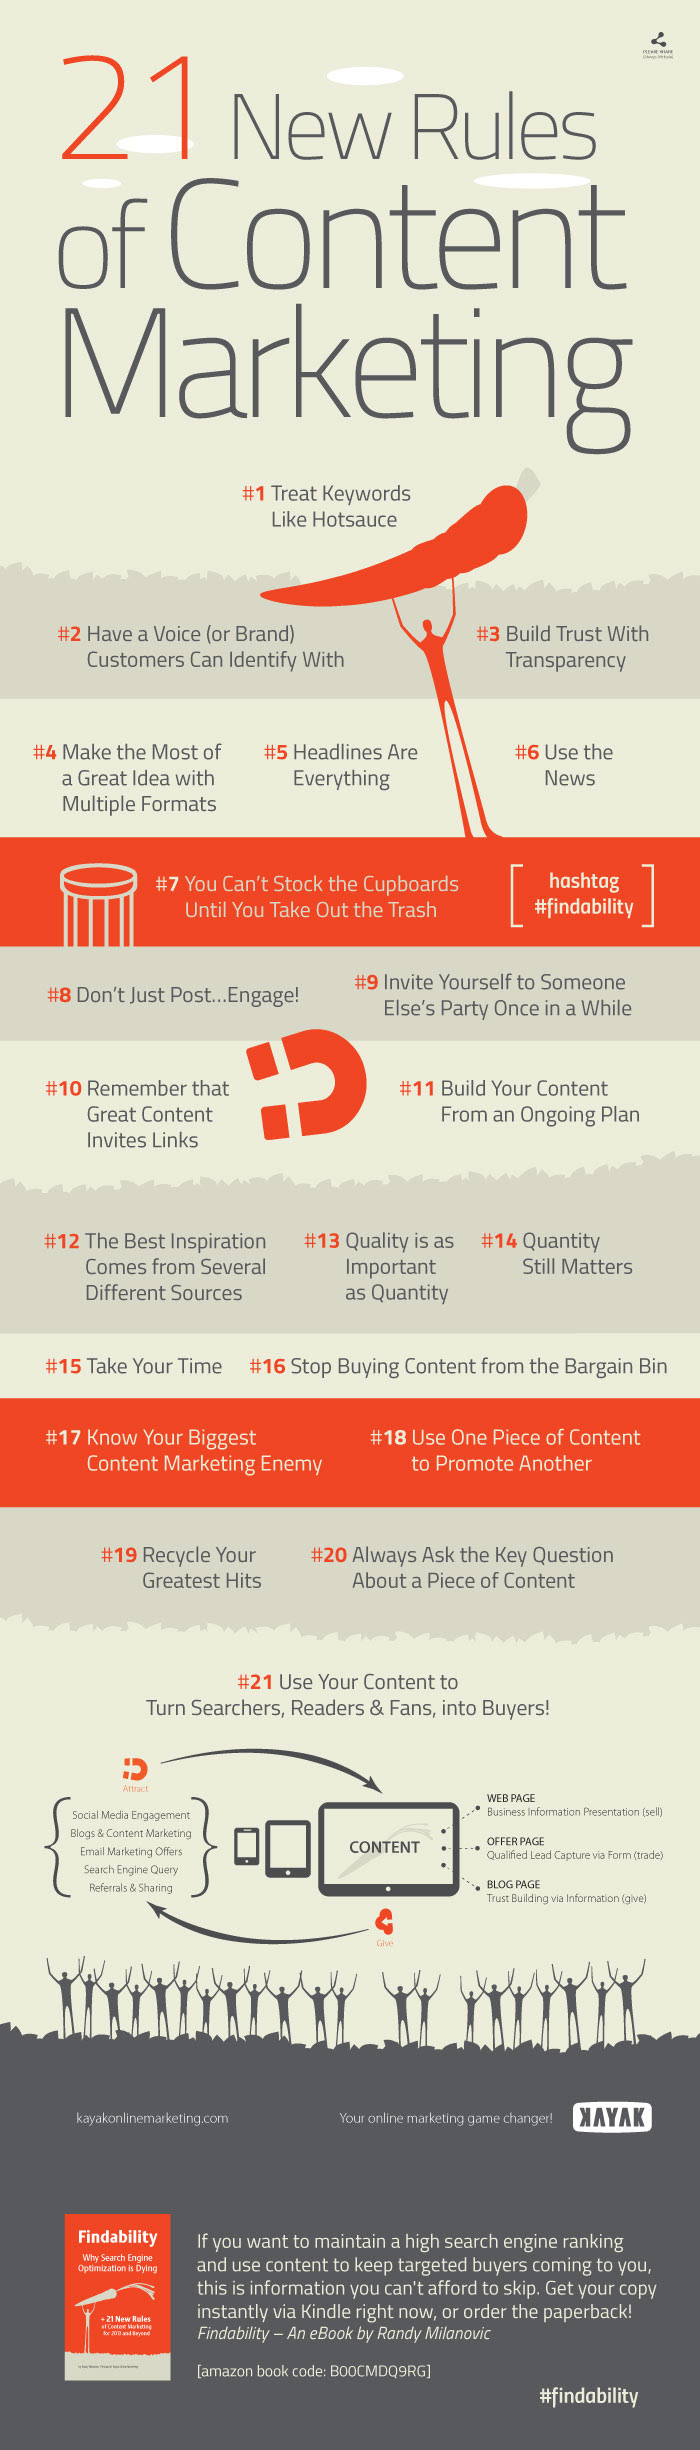 http://cdn2.hubspot.net/hub/123680/file-269326008-jpg/69-21-new-rules-of-content-marketing-infographic.jpg